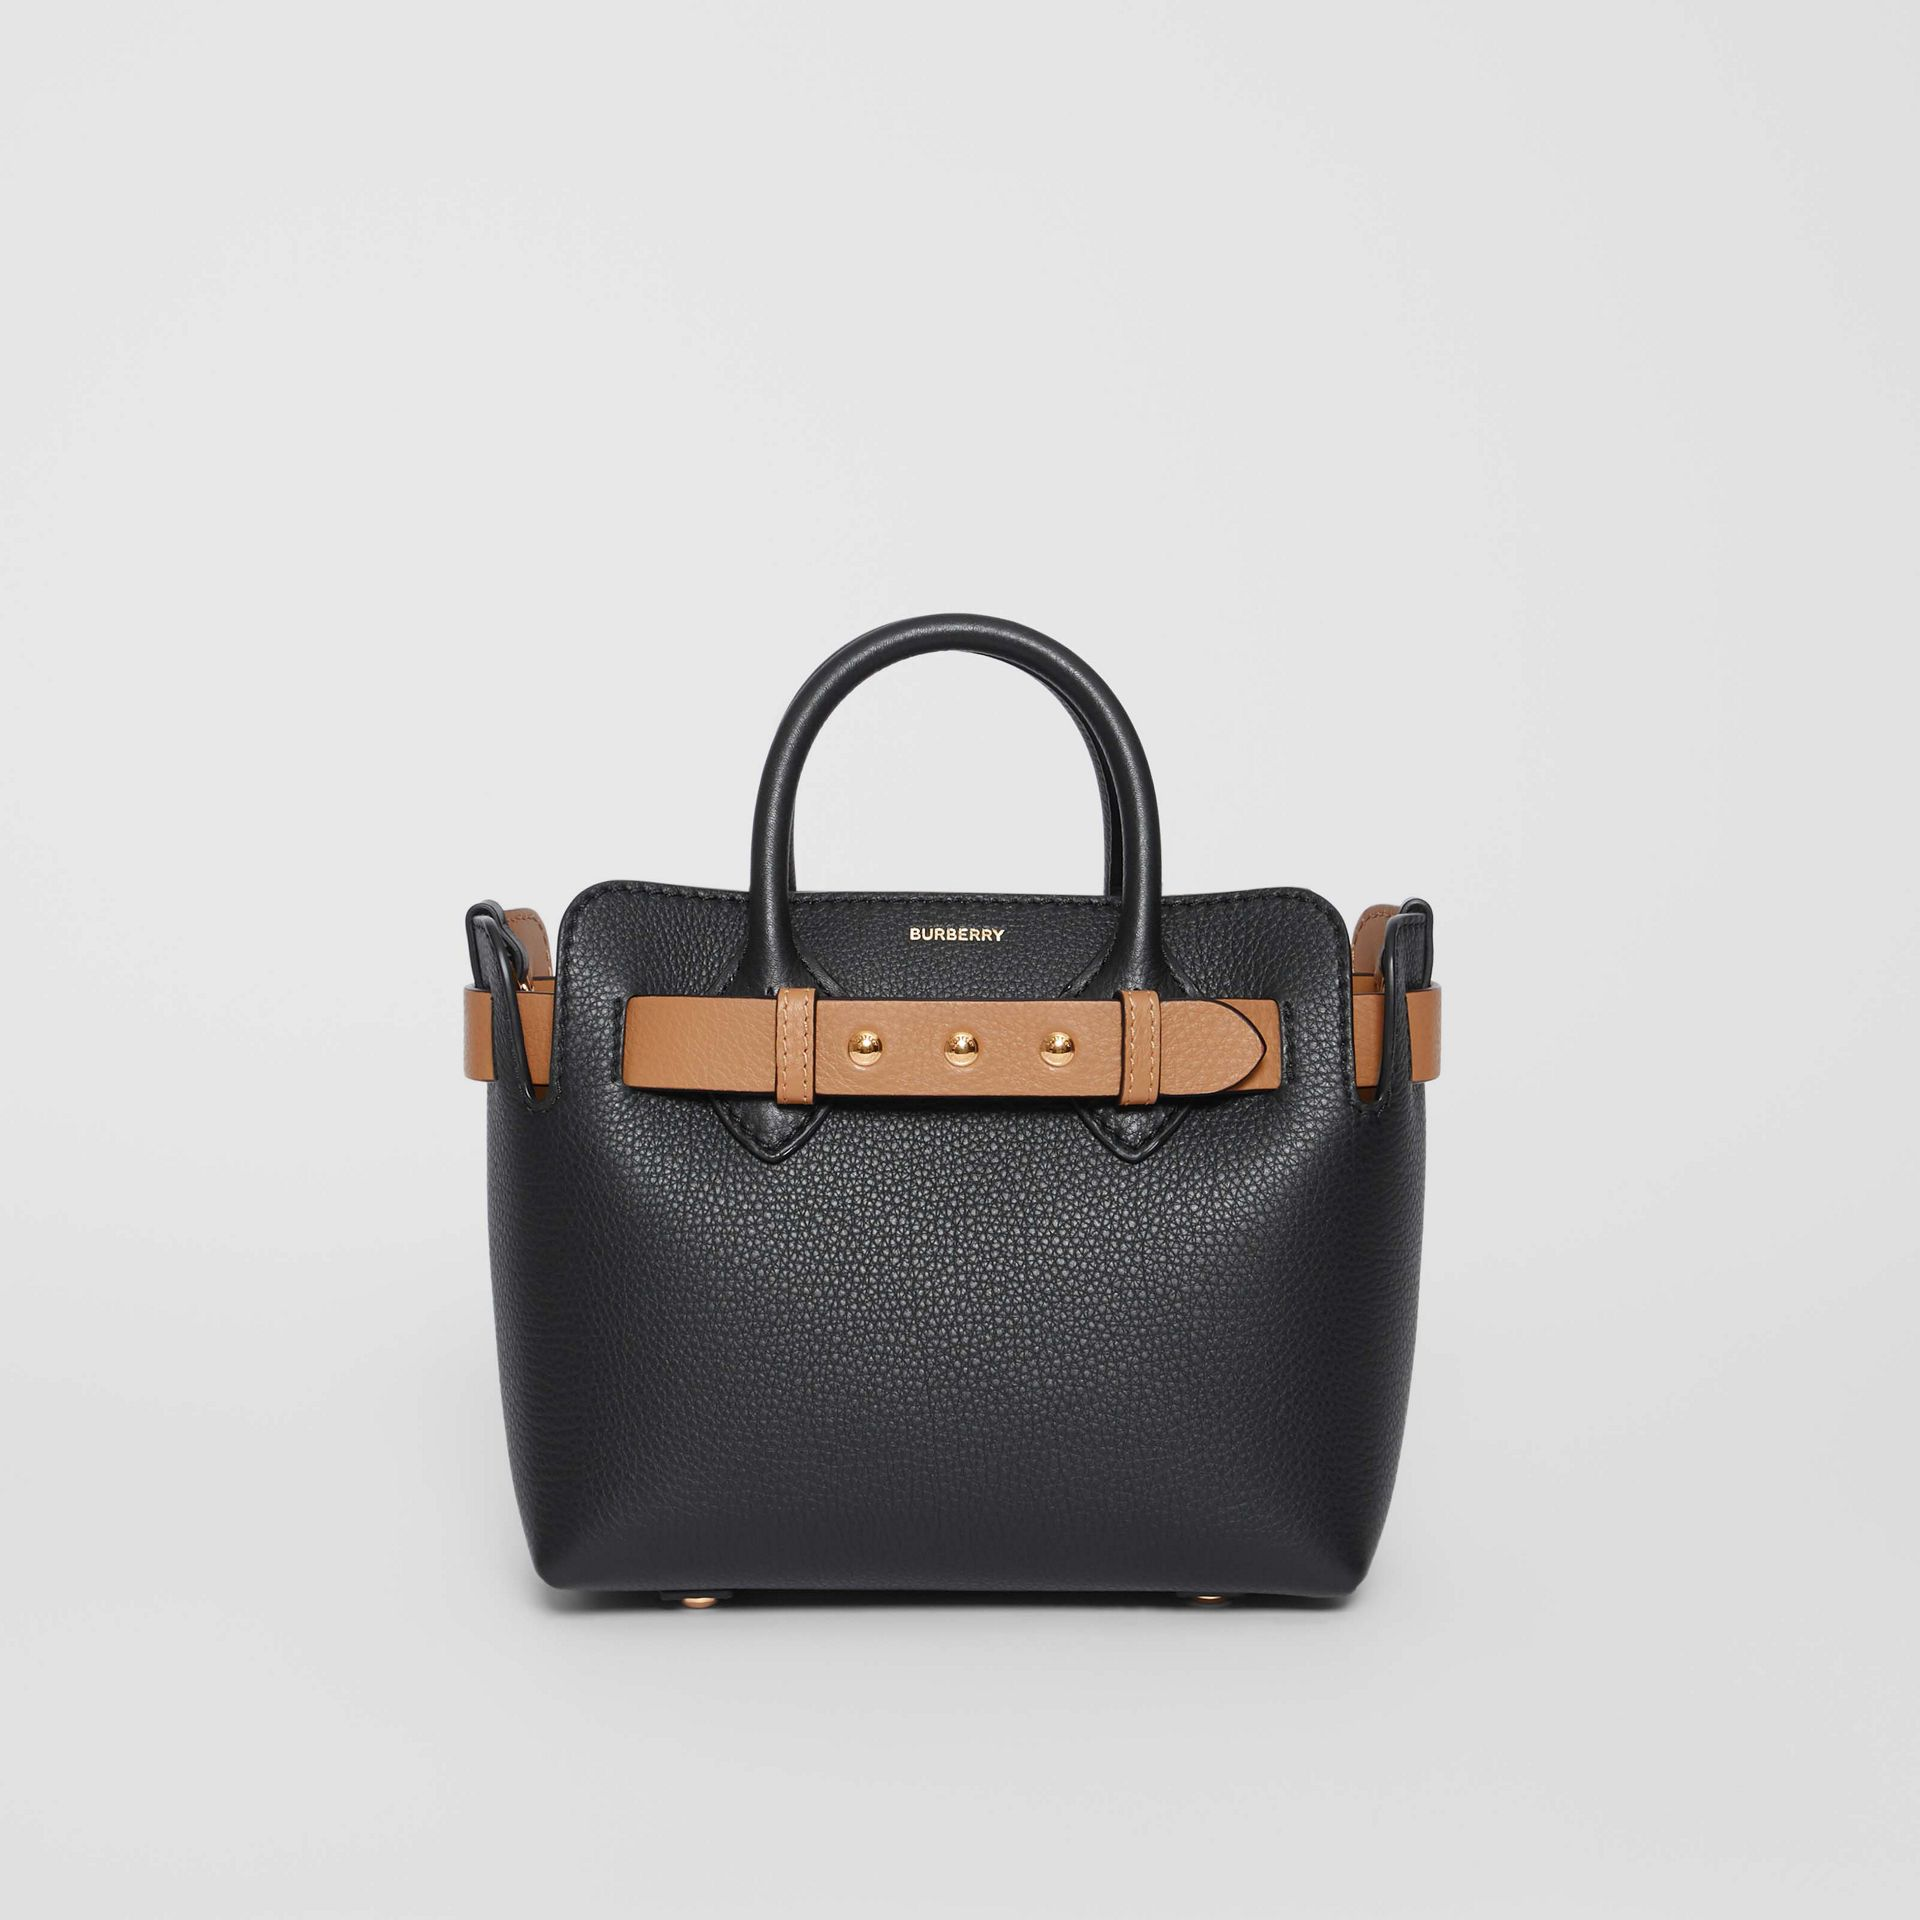 Borsa The Belt mini in pelle con tre borchie (Nero) - Donna | Burberry - immagine della galleria 0